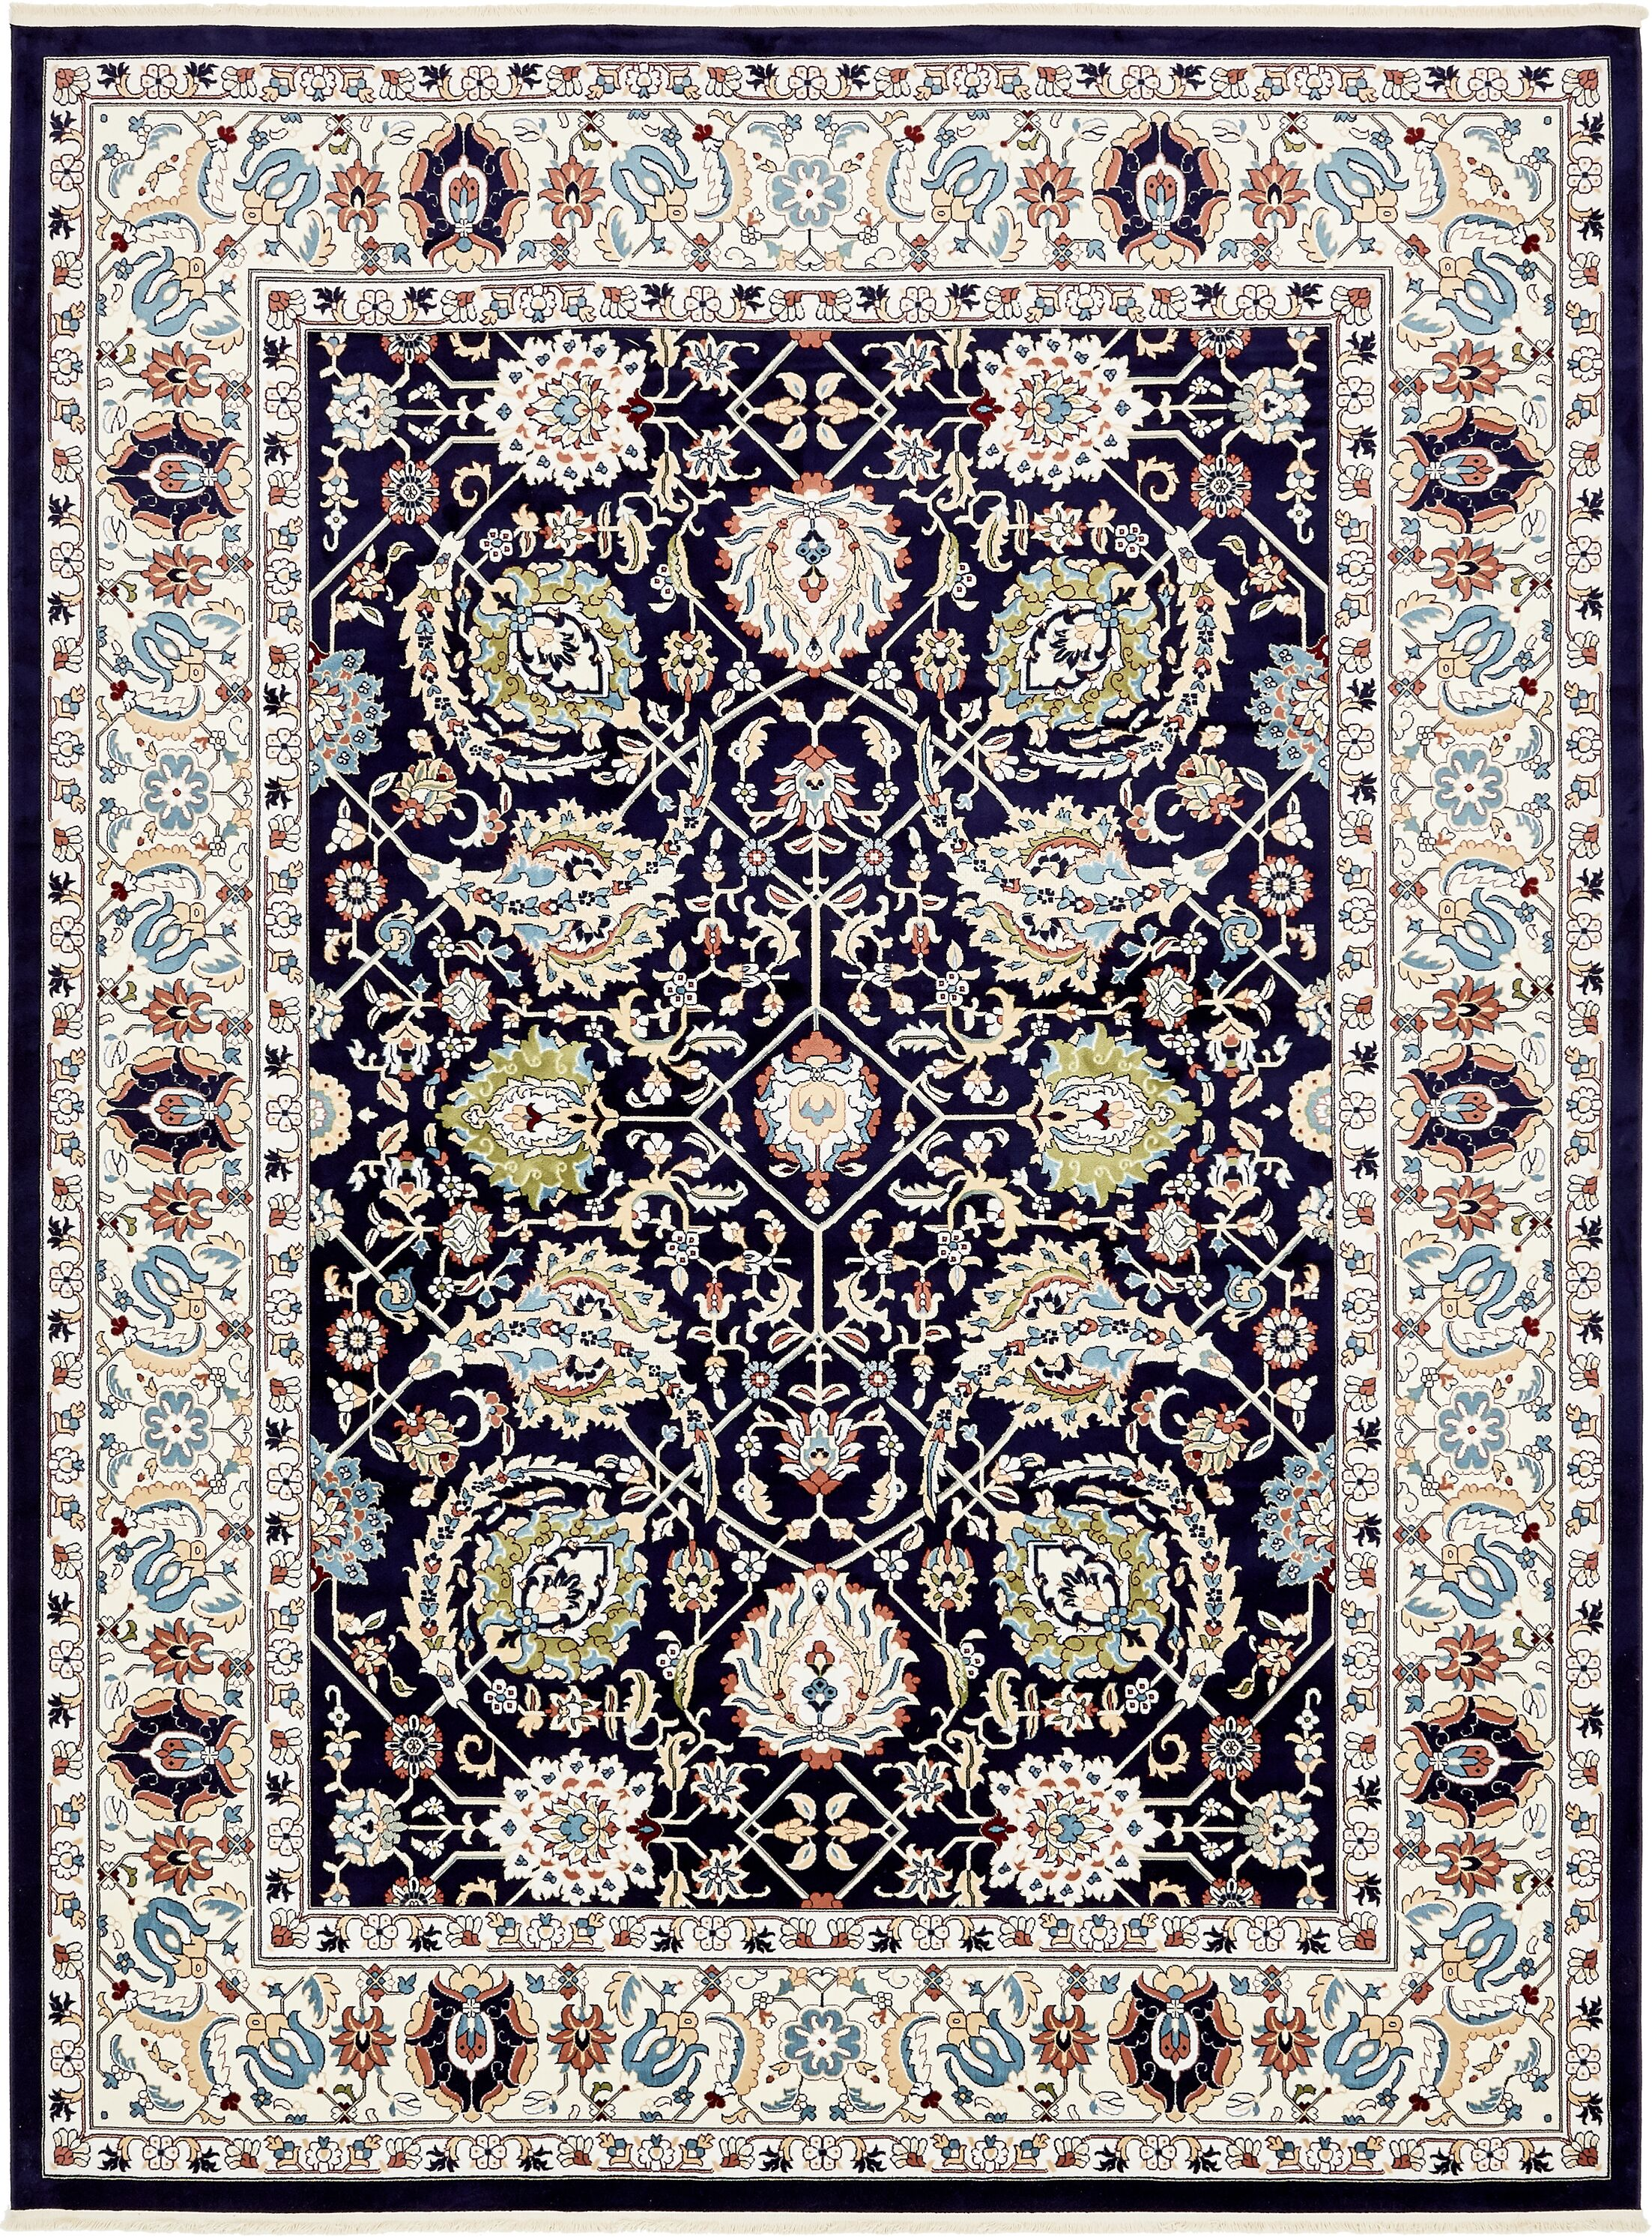 Quince Navy Blue/Tan Area Rug Rug Size: Rectangle 13' x 19'8